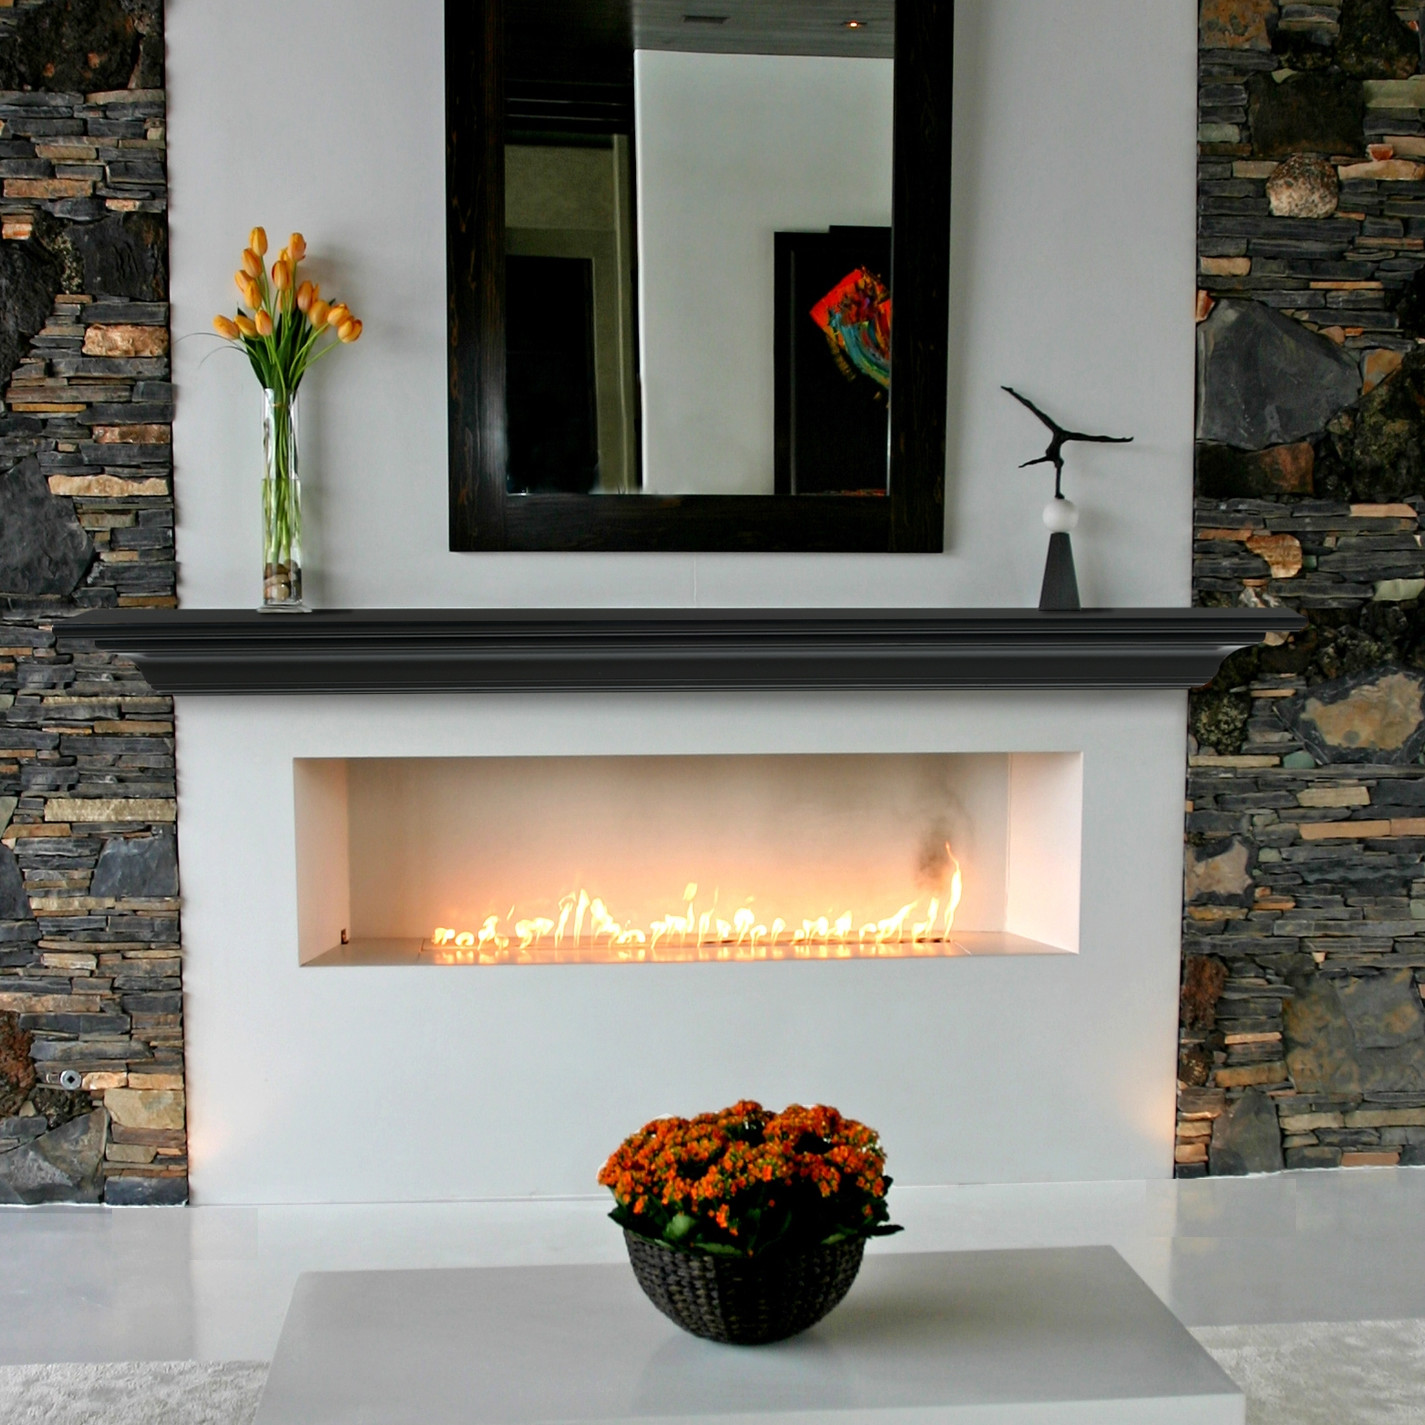 4 Types Of Fireplace Mantel Shelves To Choose From